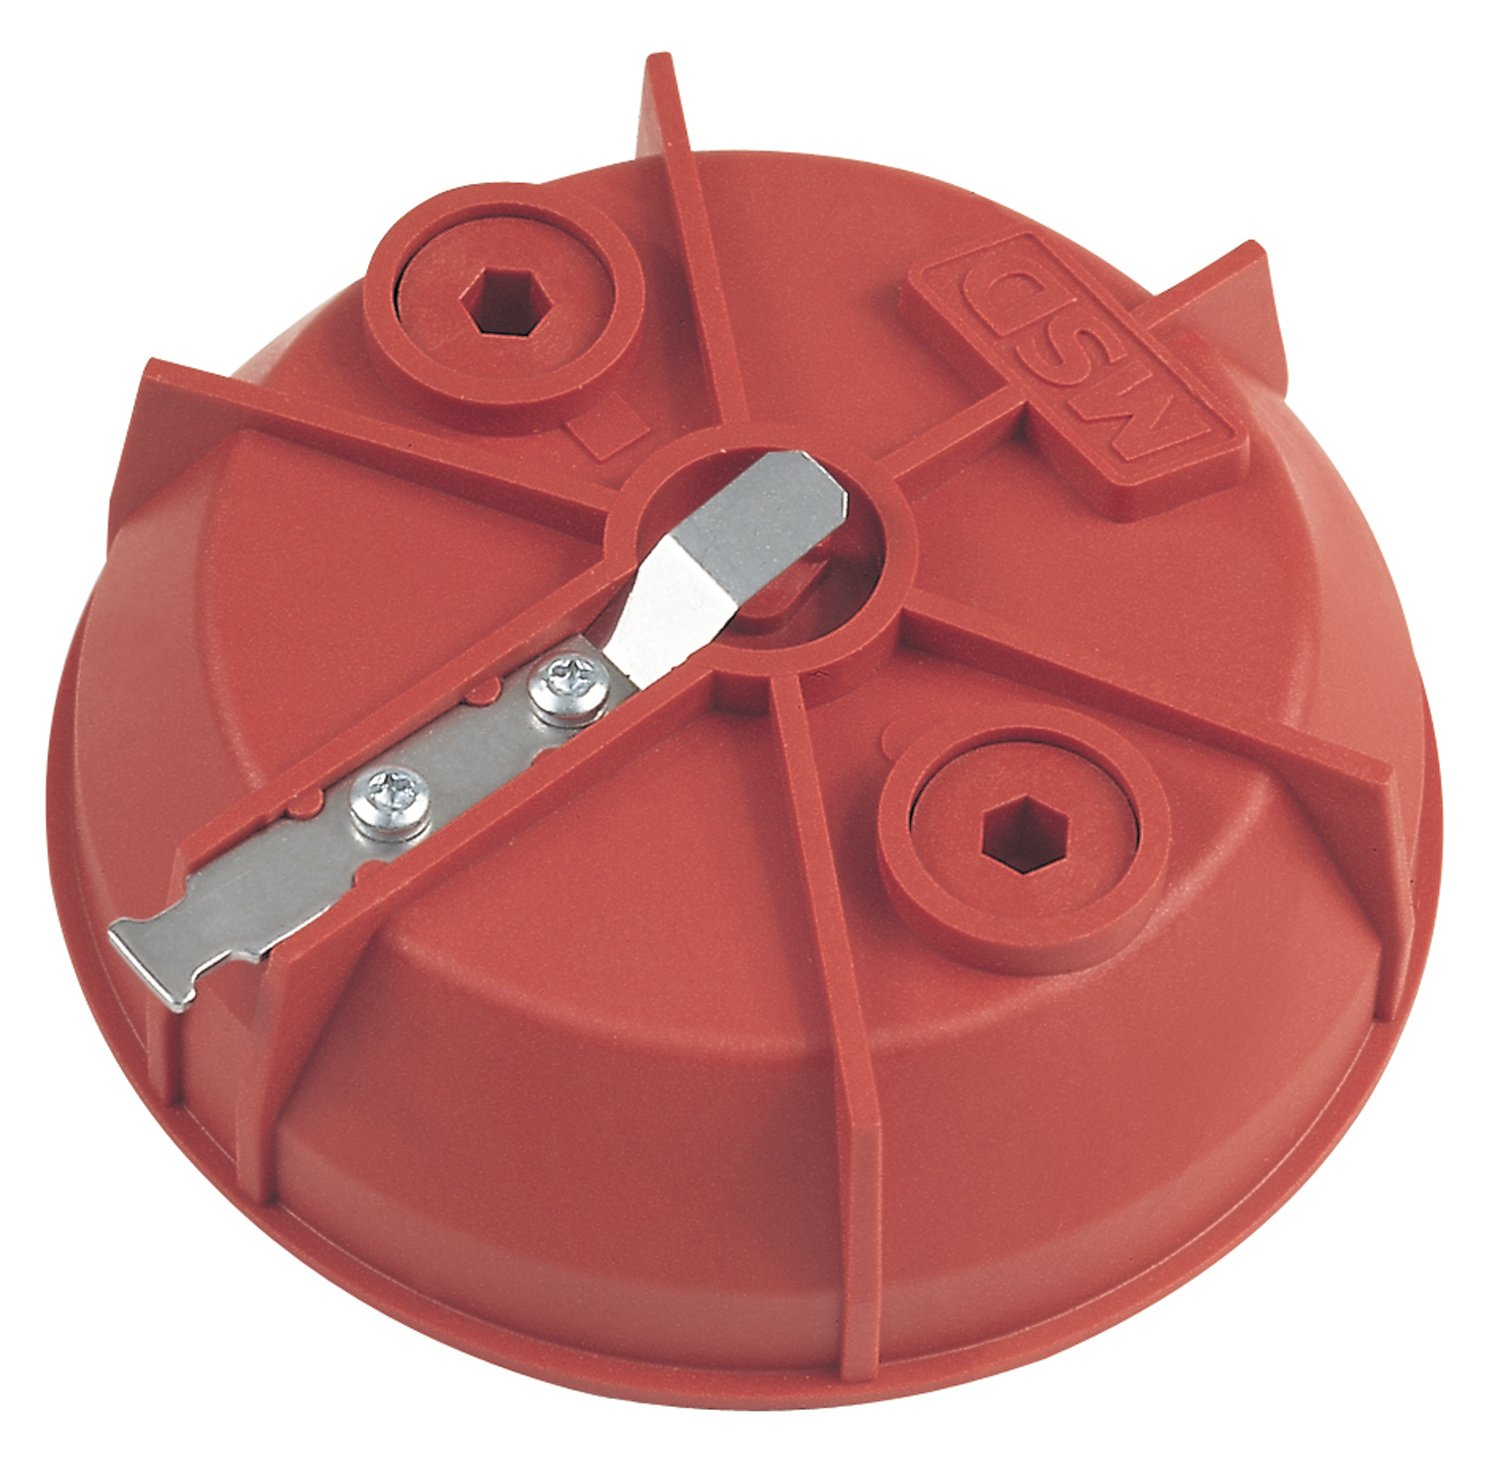 Red Rotor for Pro Cap Distributor